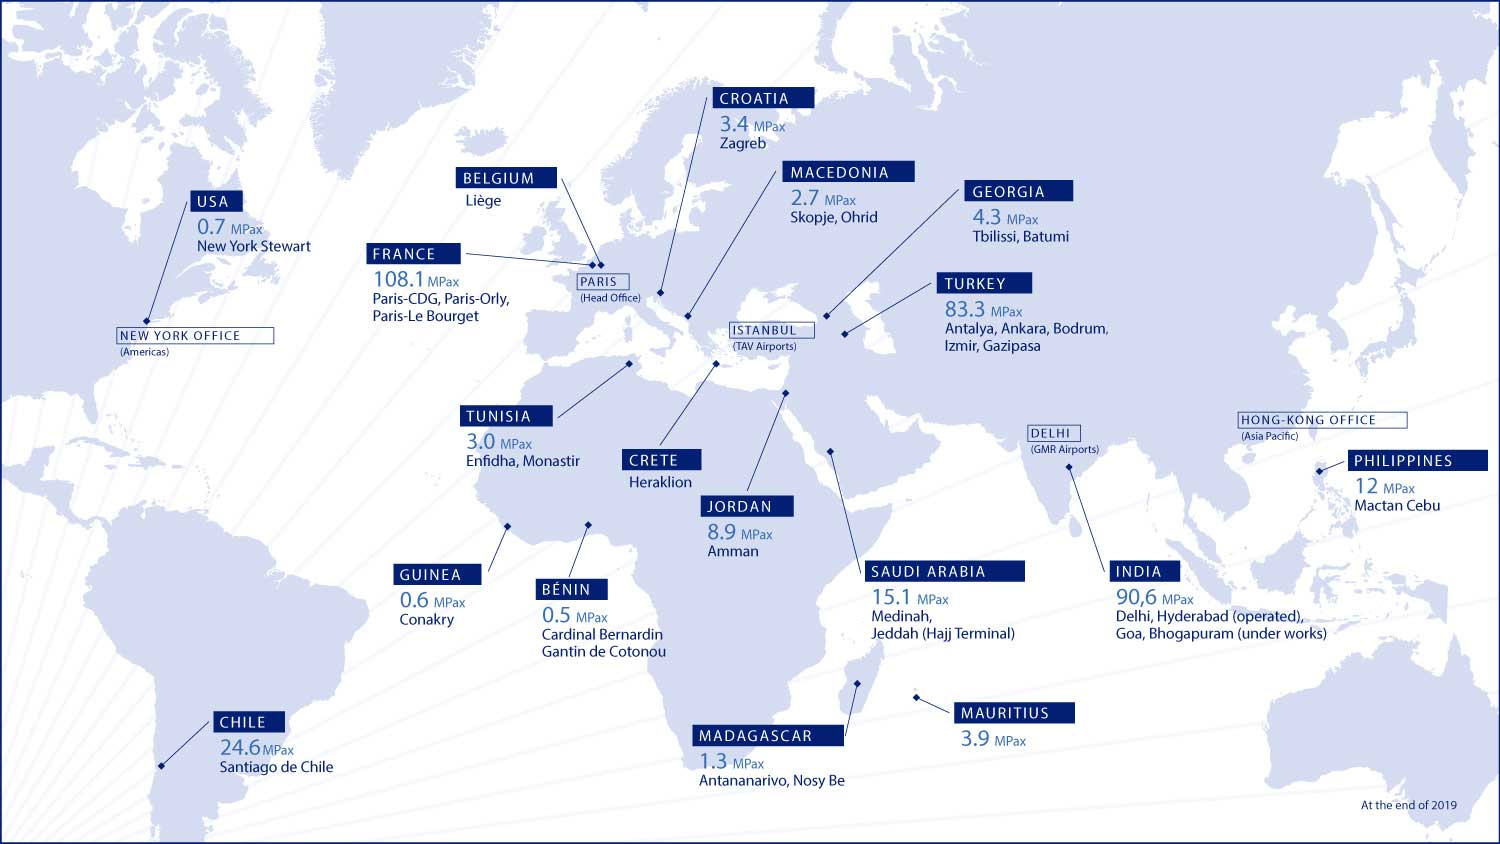 GROUPE ADP: A GLOBAL AIRPORT NETWORK